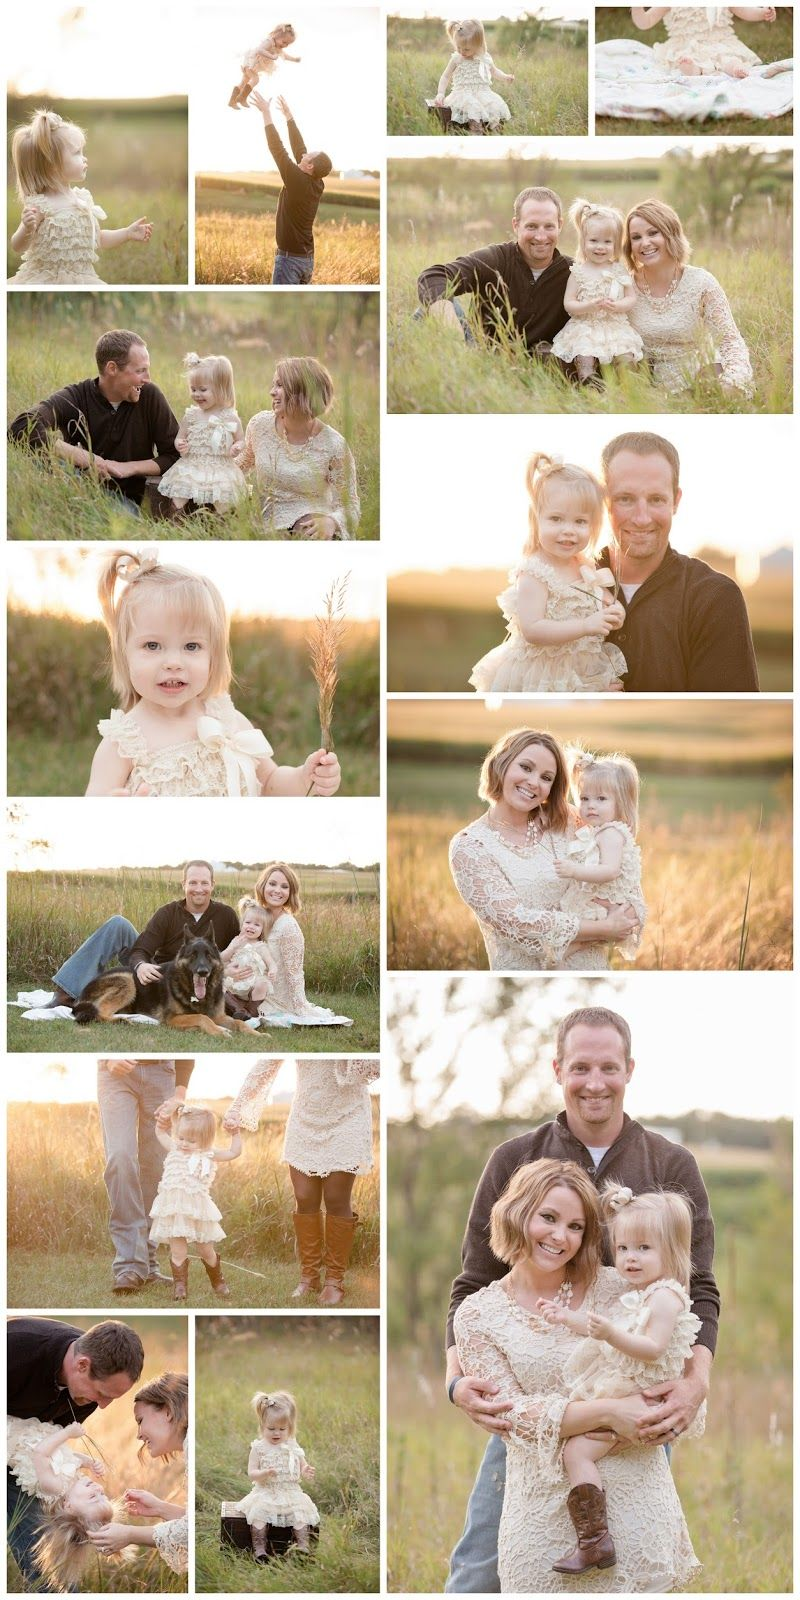 Family and toddler summer photography shoot with neutral colors